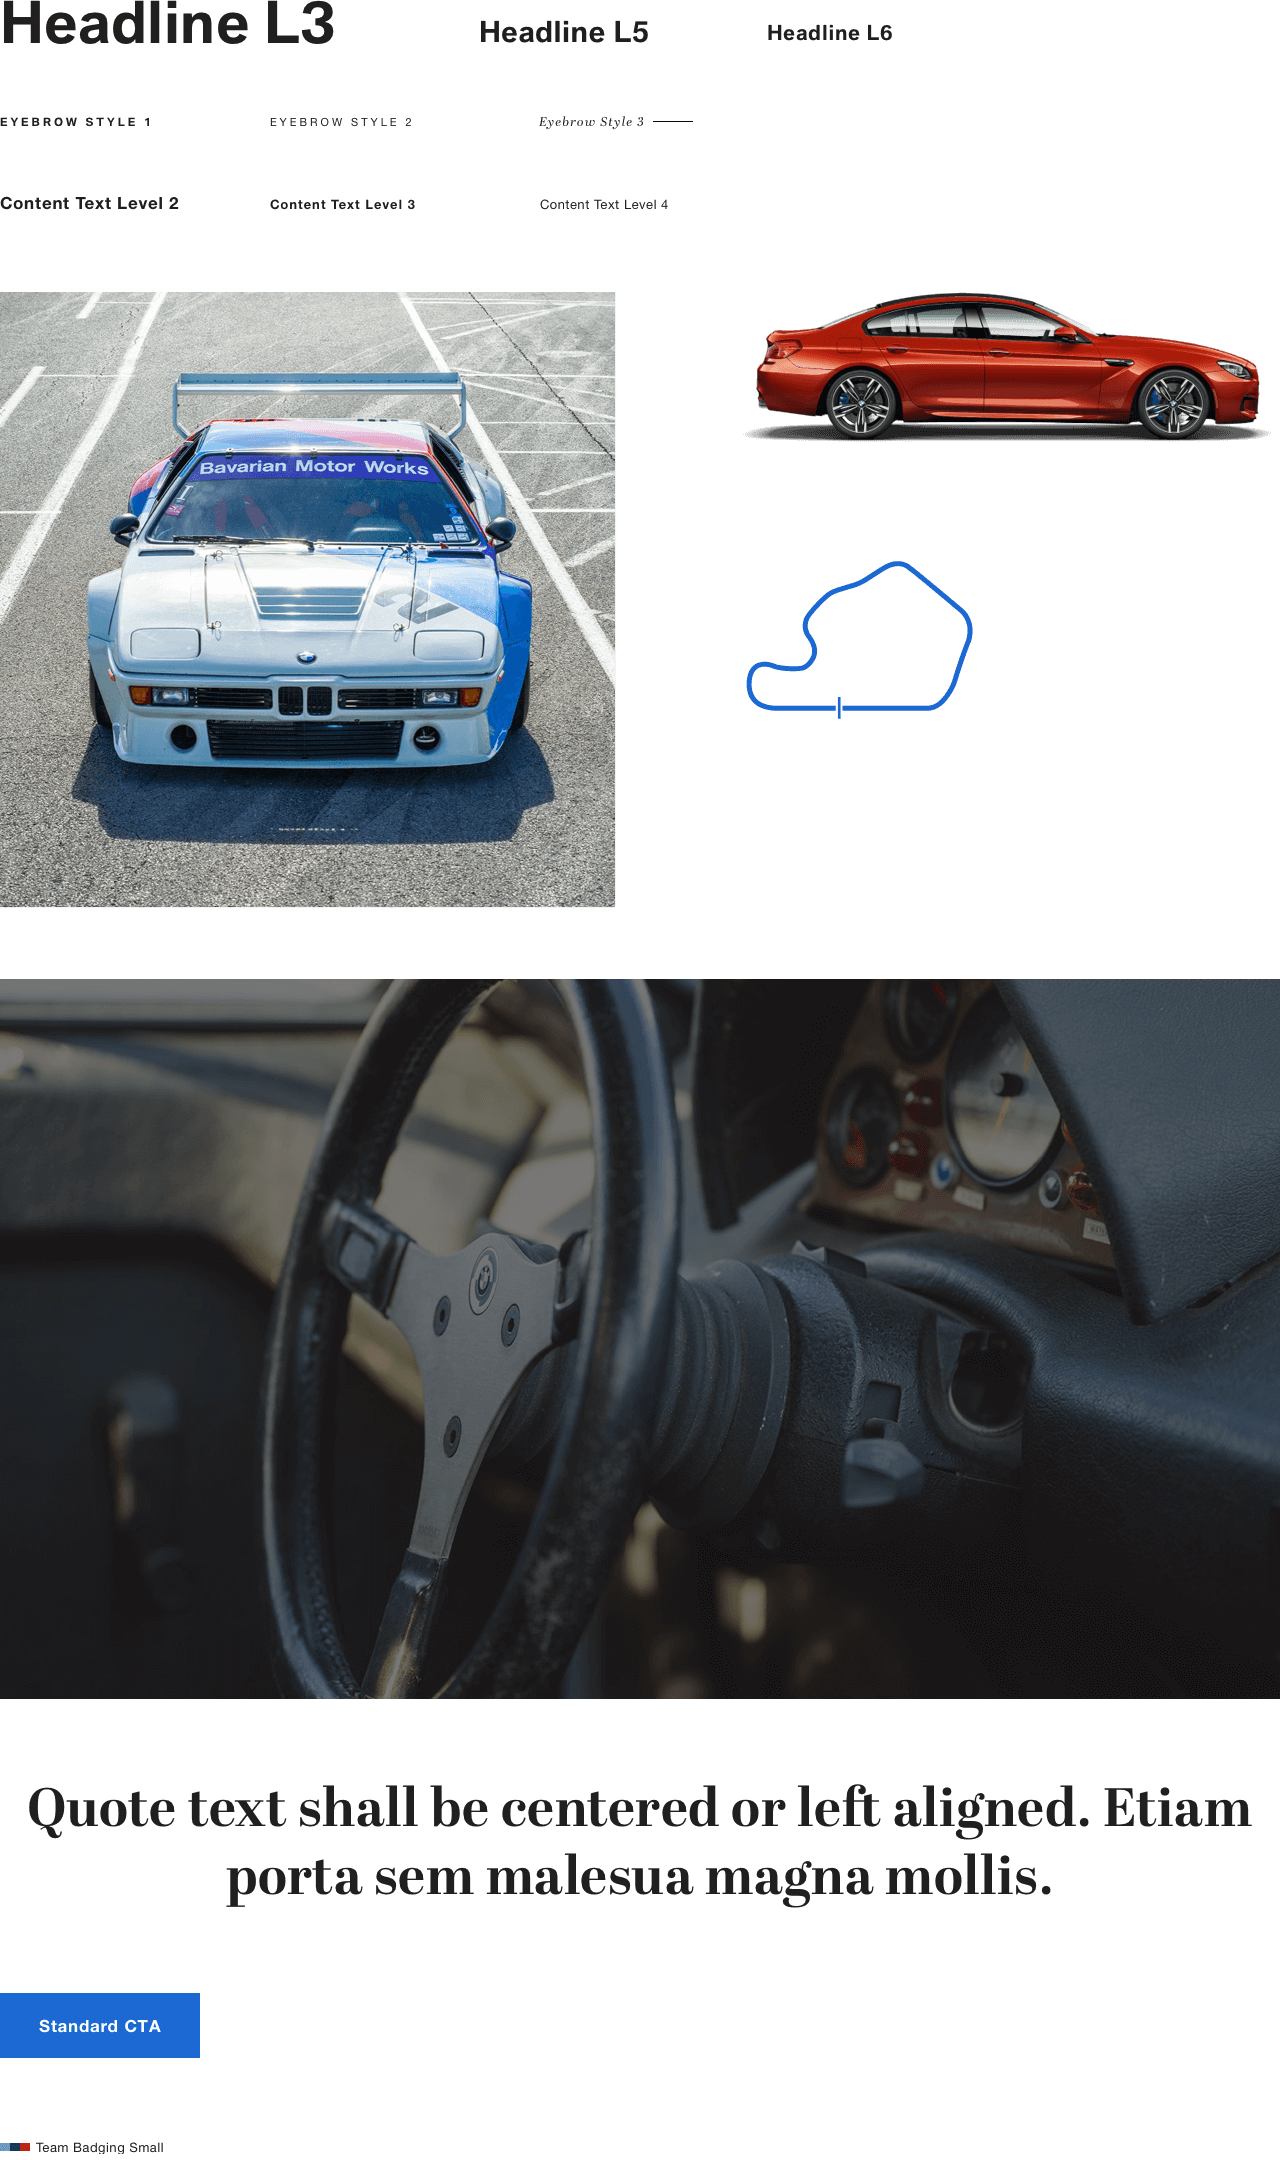 bmw_atomic_components